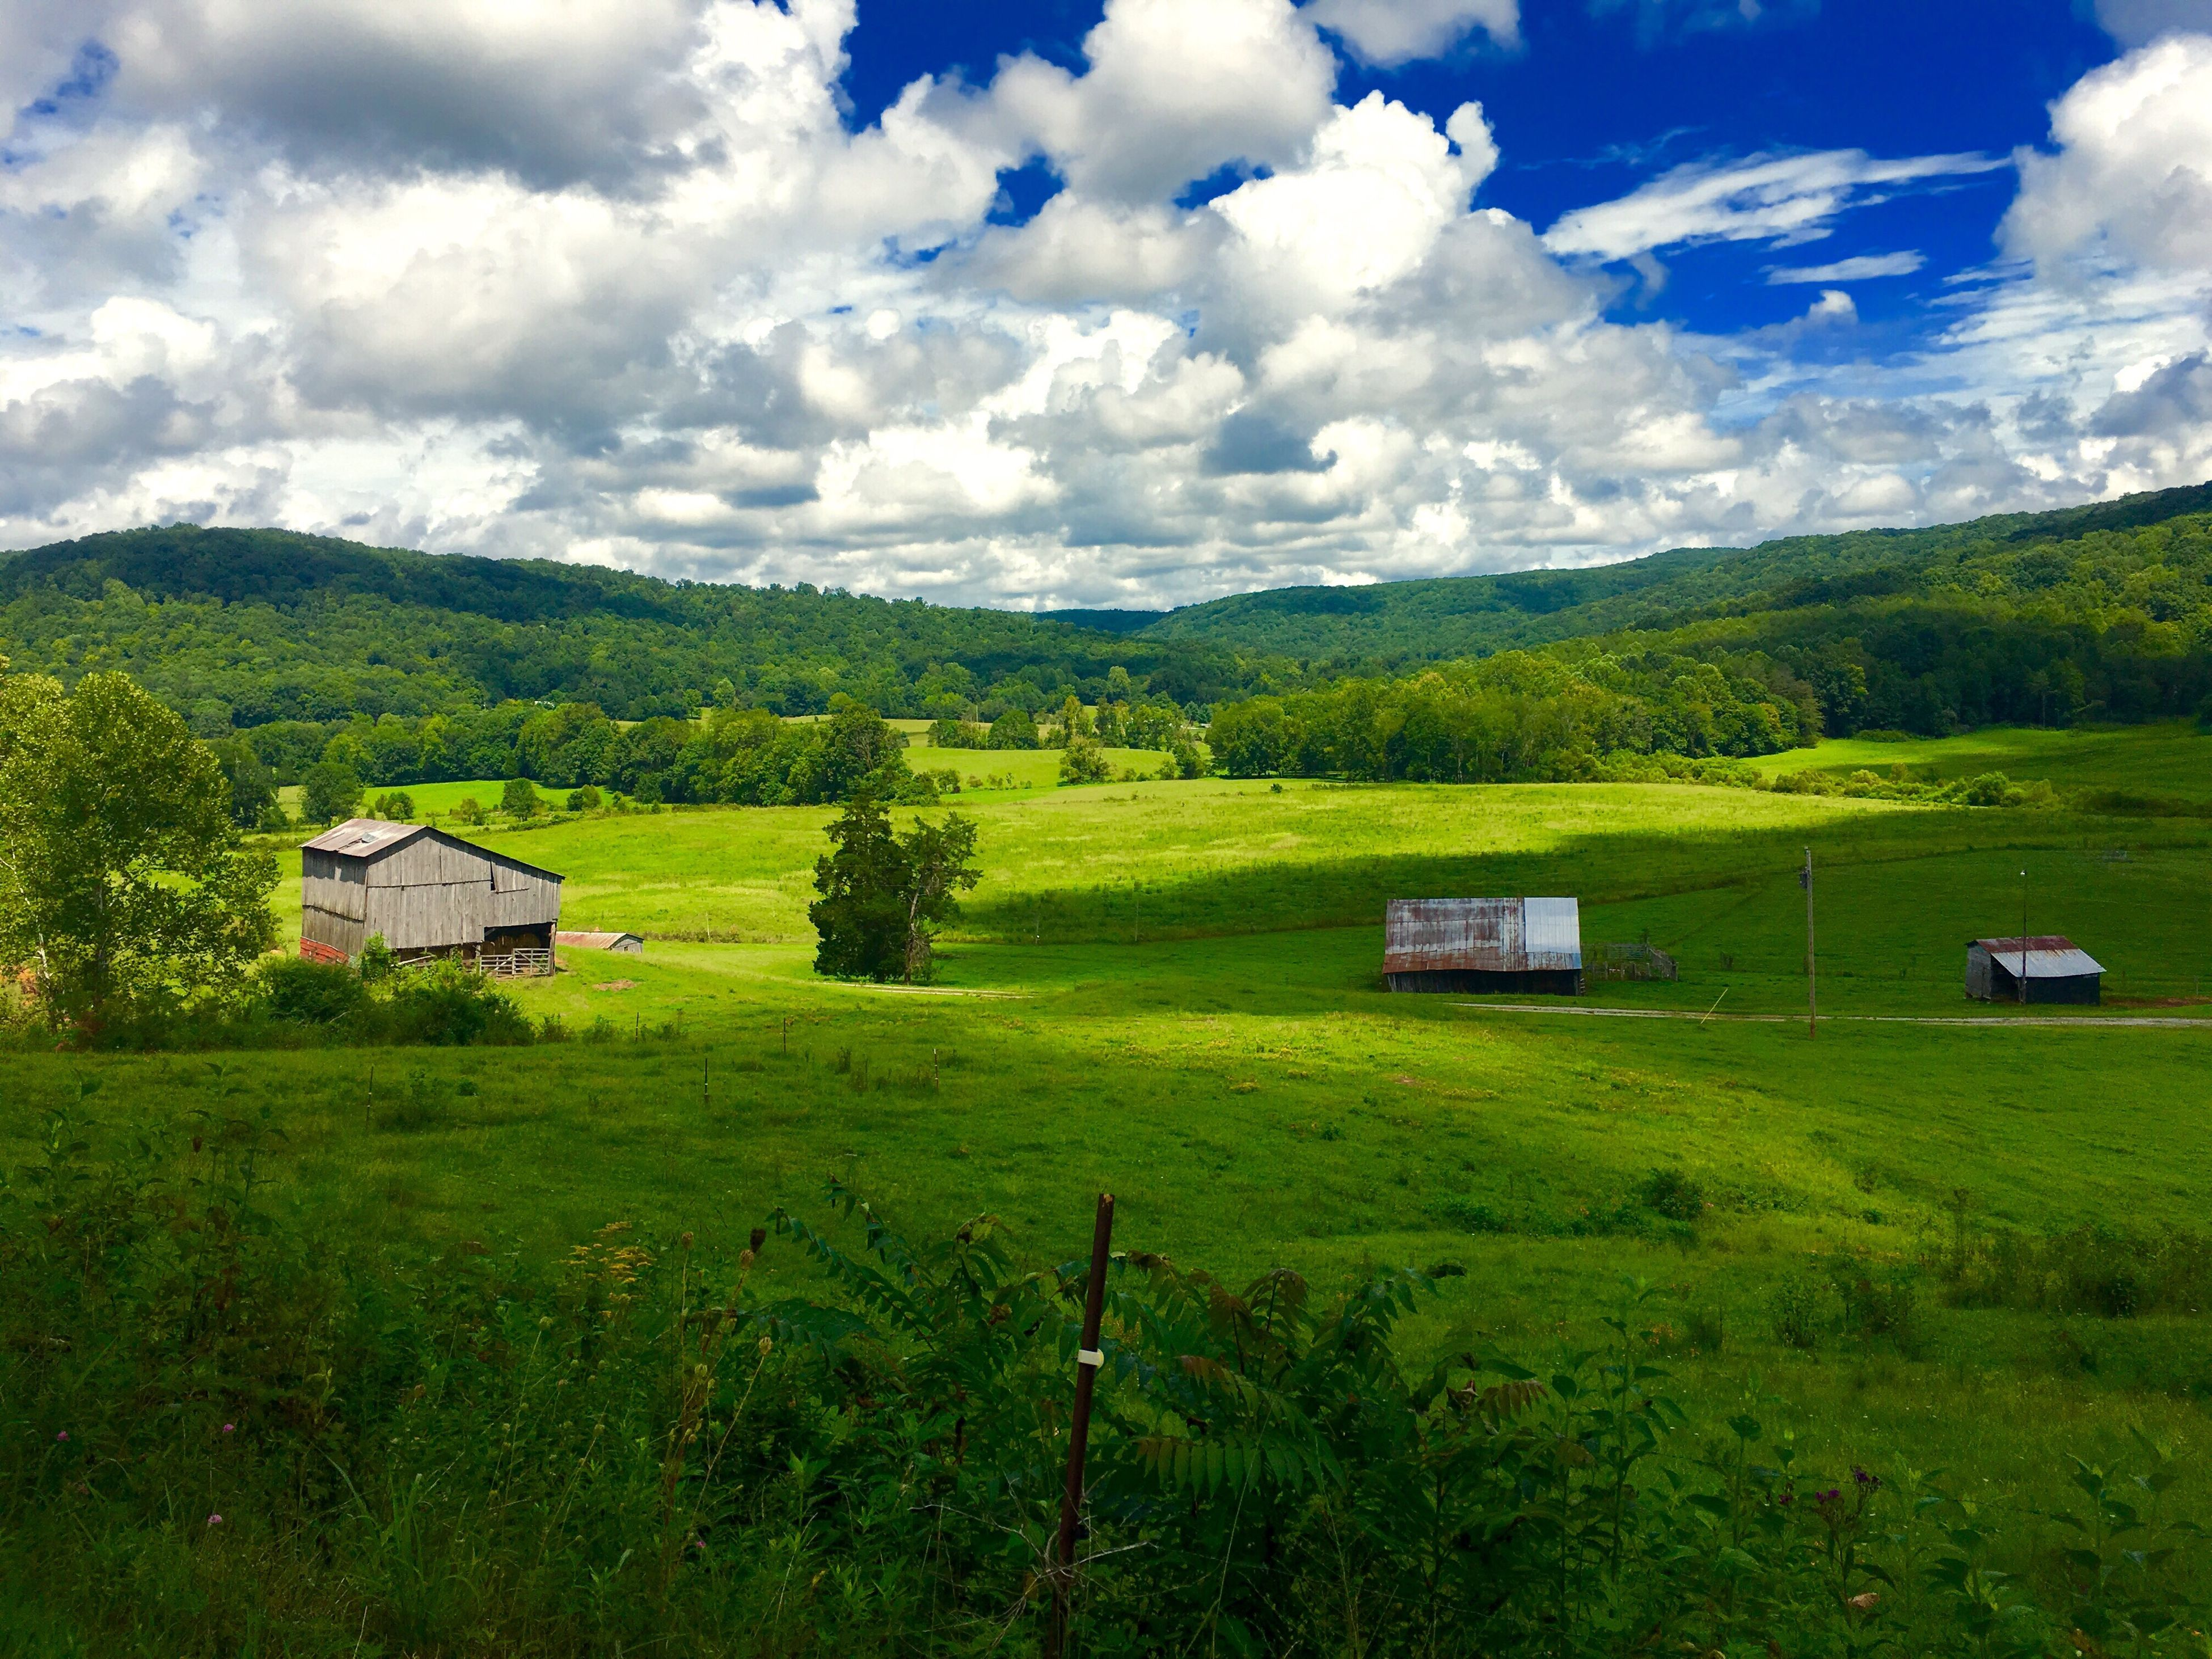 landscape, grass, tranquil scene, house, sky, tranquility, built structure, countryside, green color, cloud - sky, architecture, field, solitude, building exterior, scenics, rural scene, nature, plant, green, non-urban scene, beauty in nature, cloud, agriculture, growth, horizon over land, day, remote, outdoors, cloudy, no people, grass area, farm, country house, distant